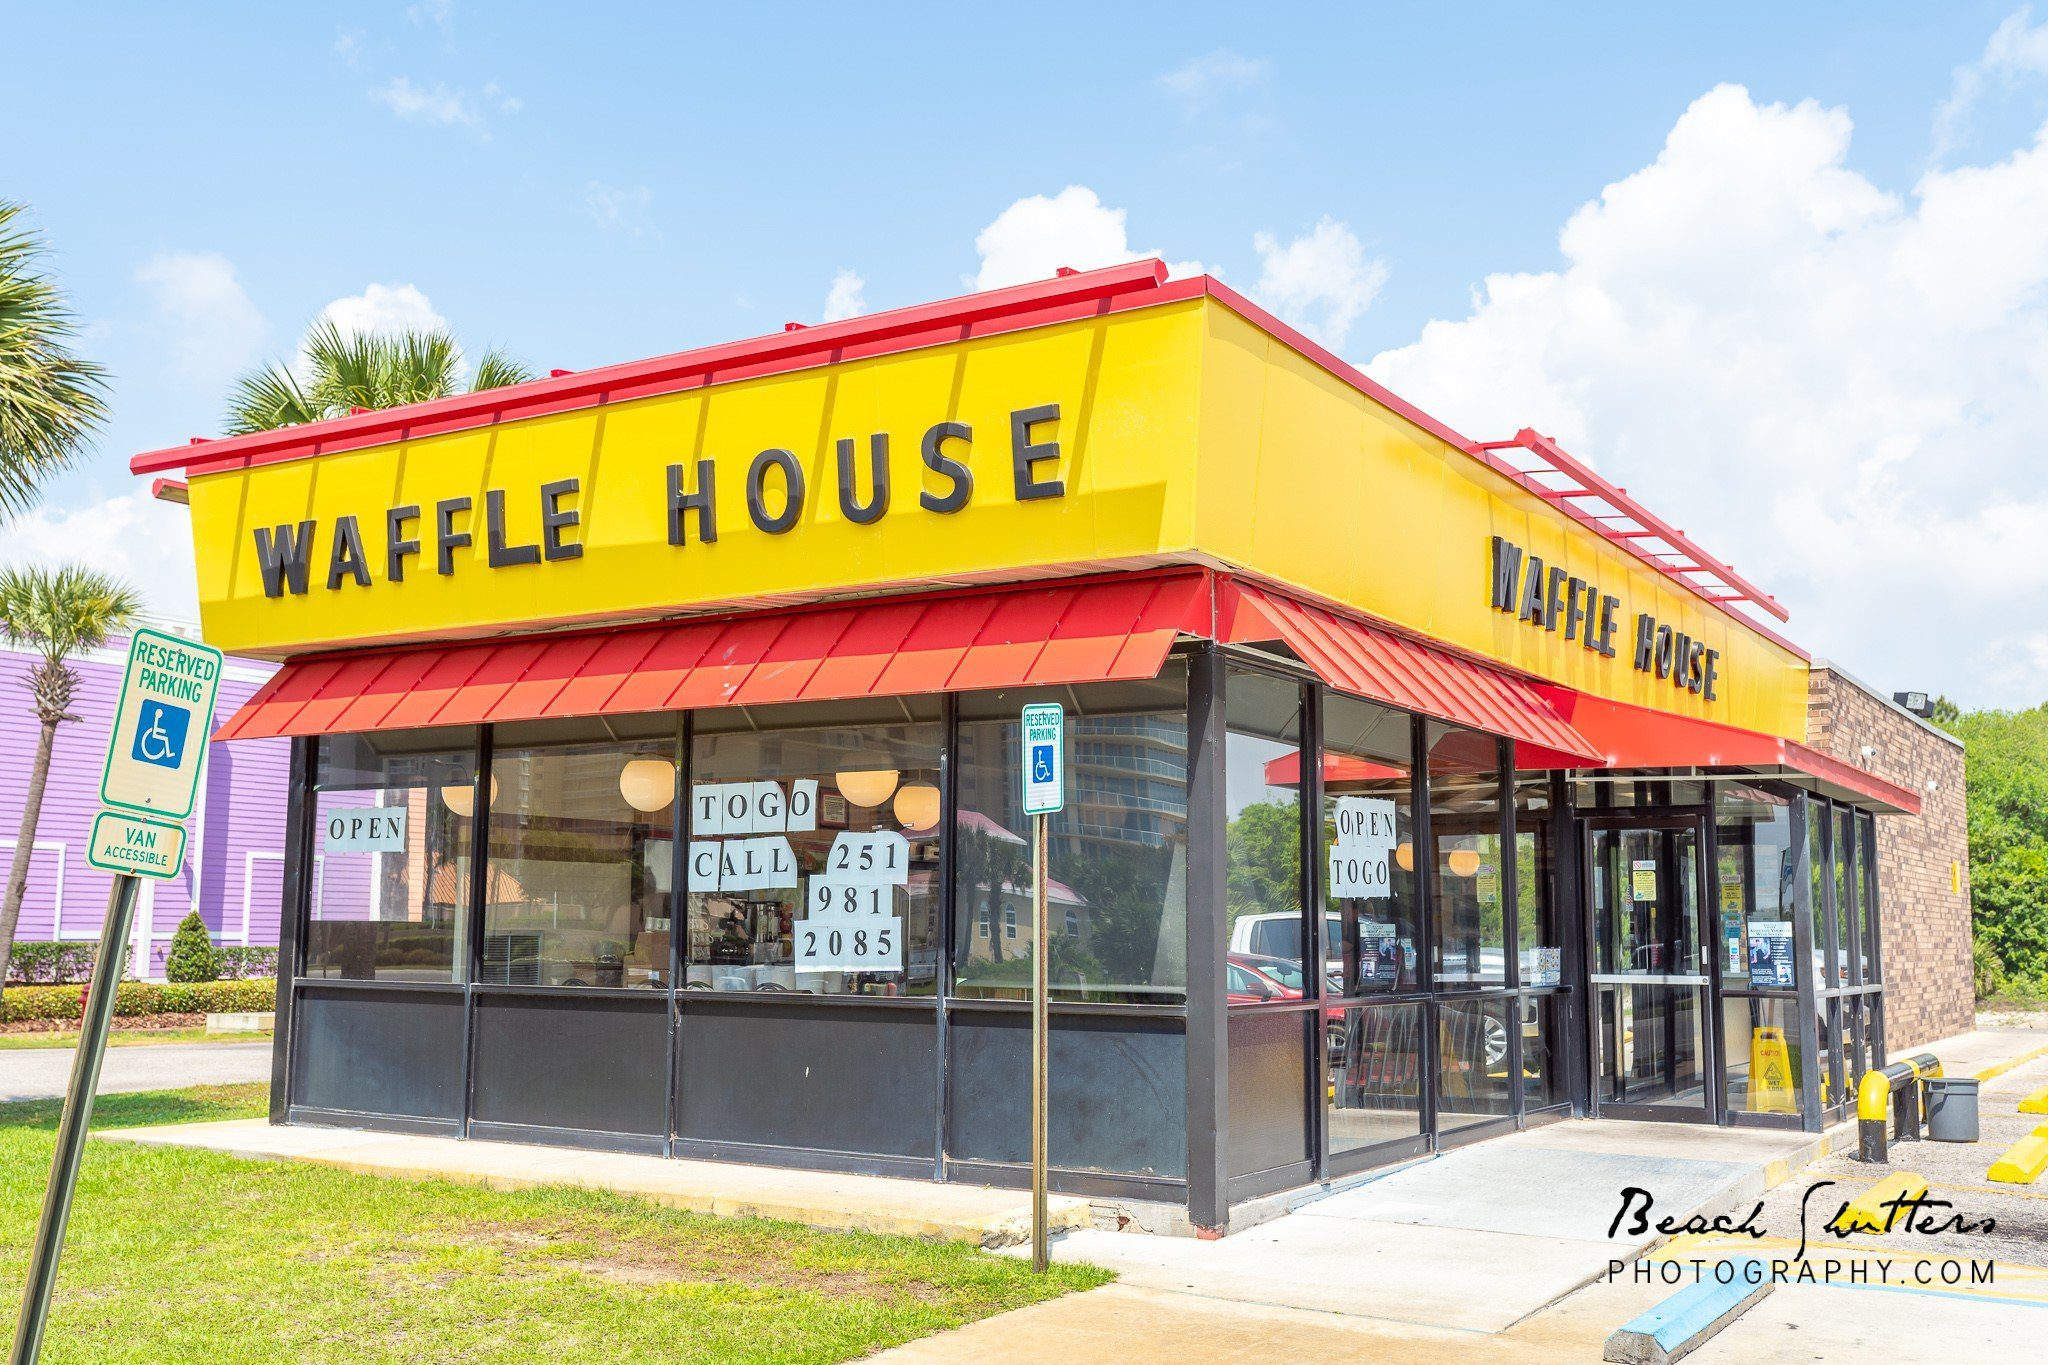 waffle house at the beach is closed.